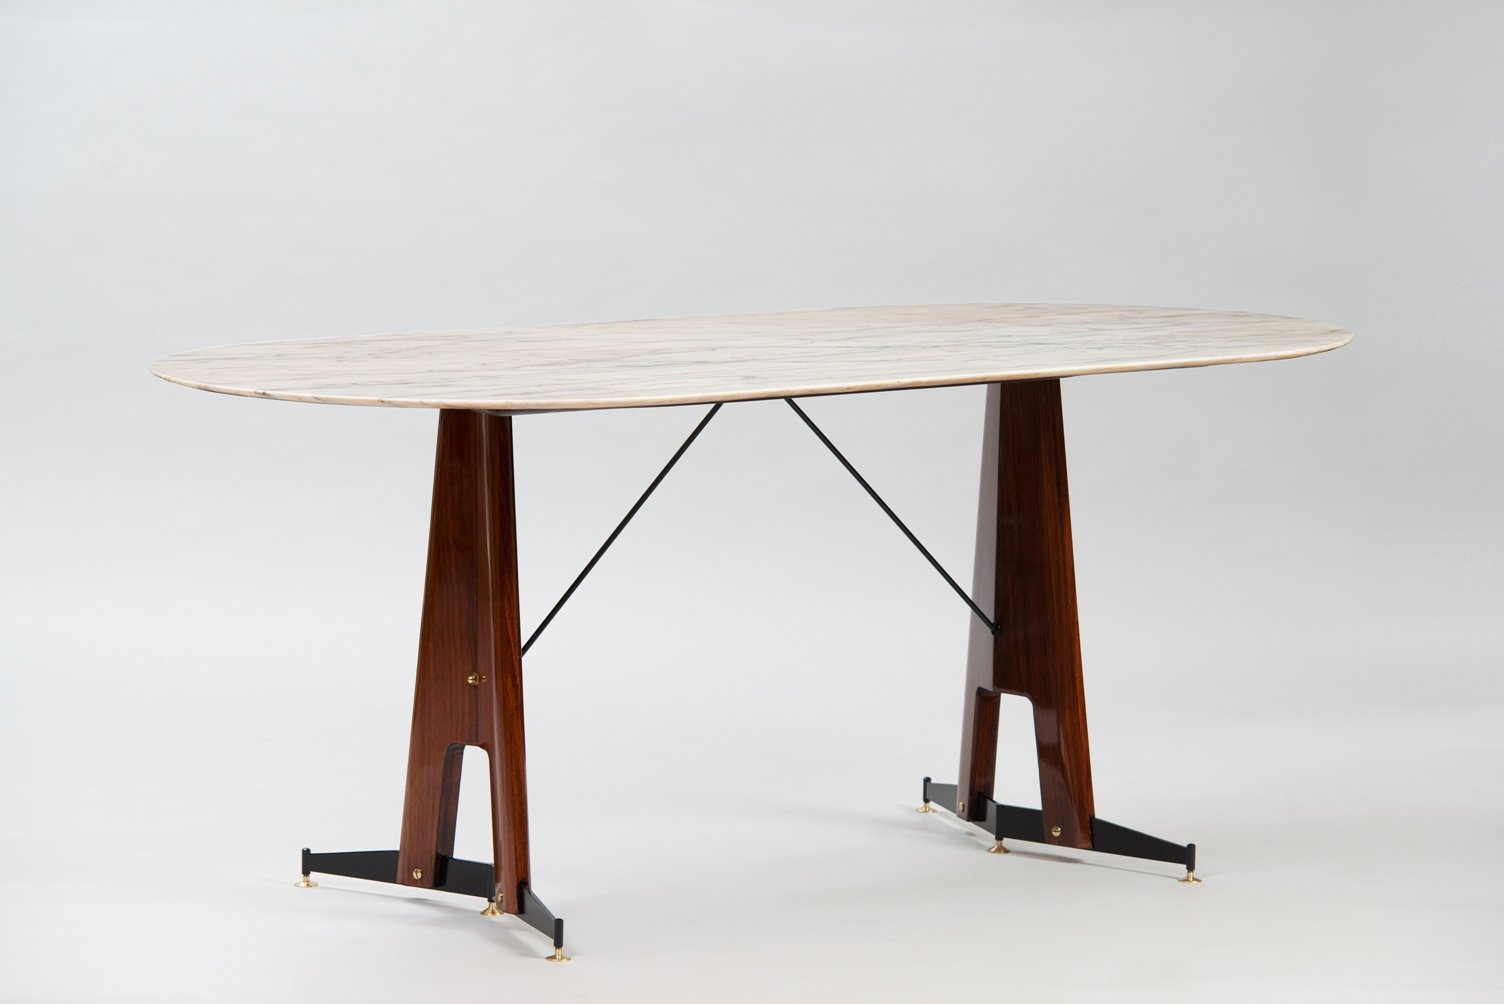 Table salle a manger marbre design for Table salle a manger modulable